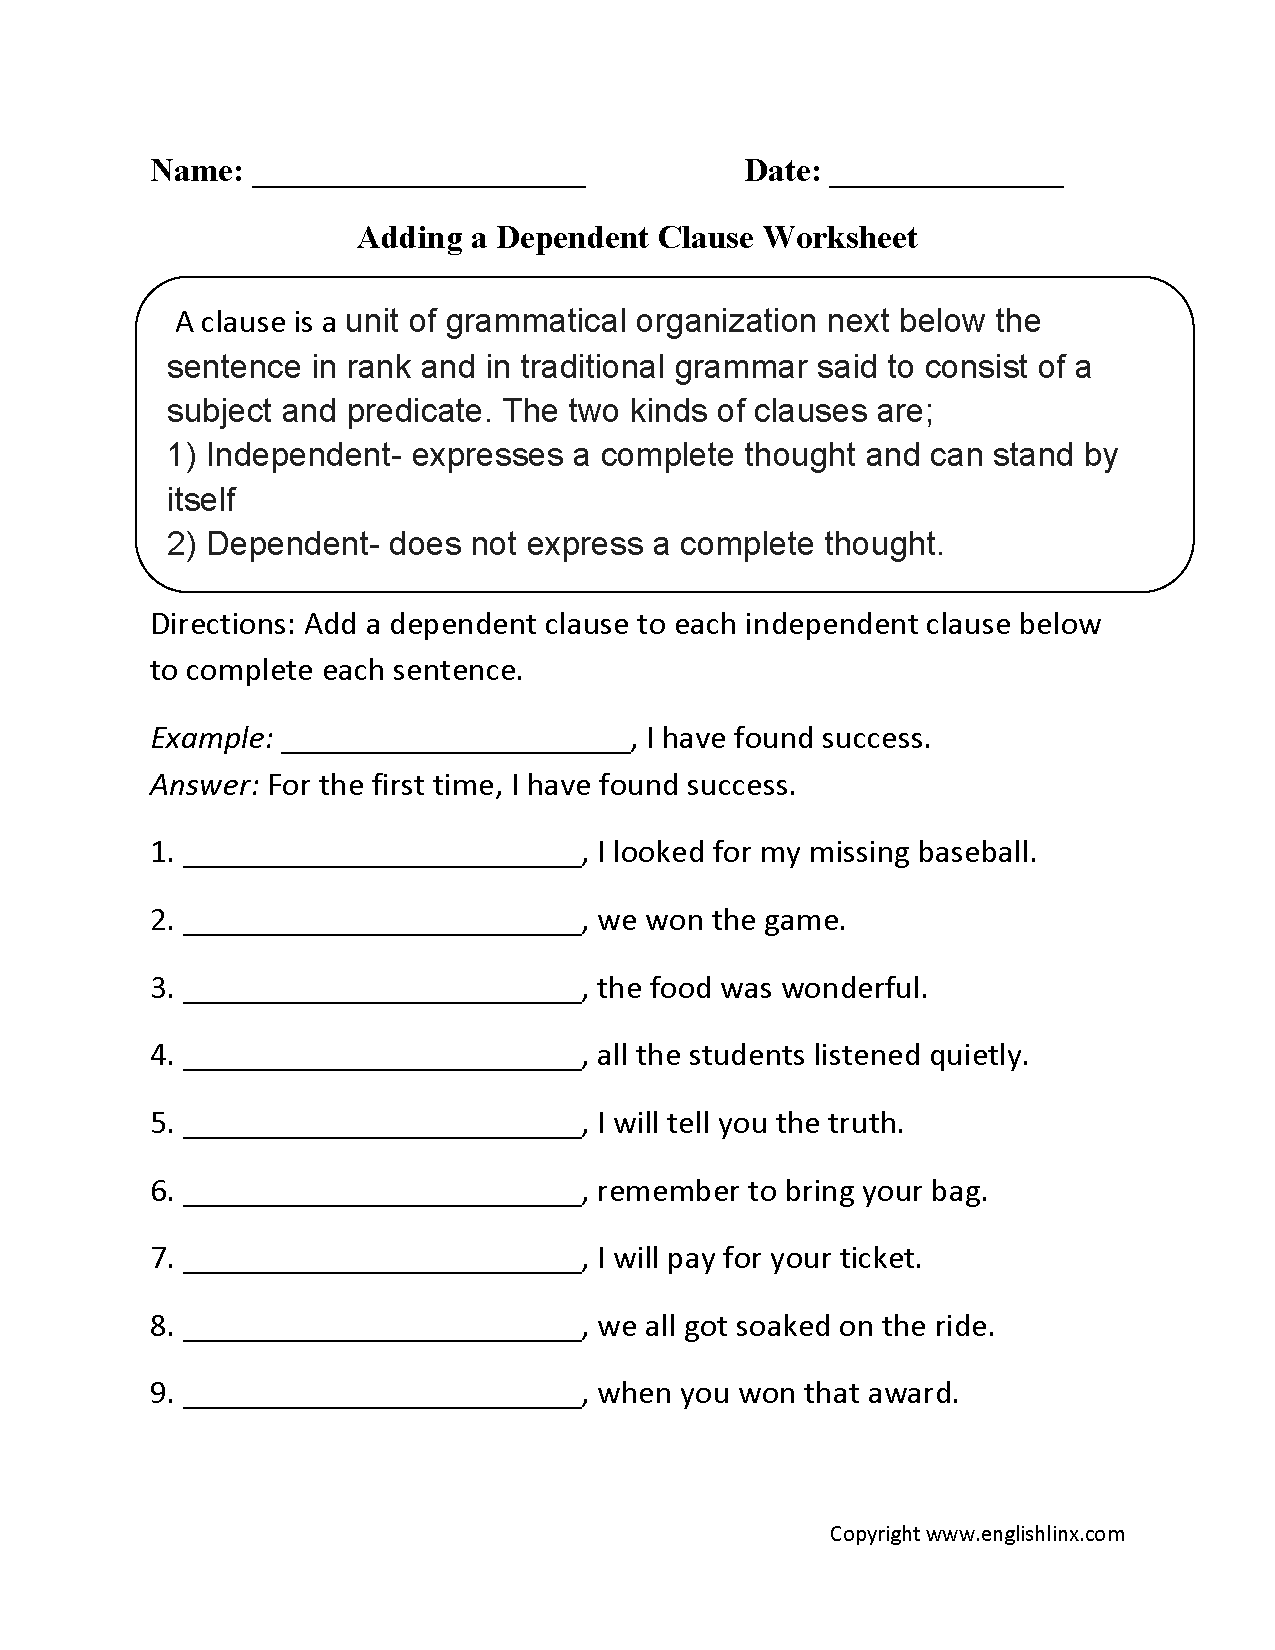 Worksheets Independent And Dependent Clauses Worksheets englishlinx com clauses worksheets worksheets